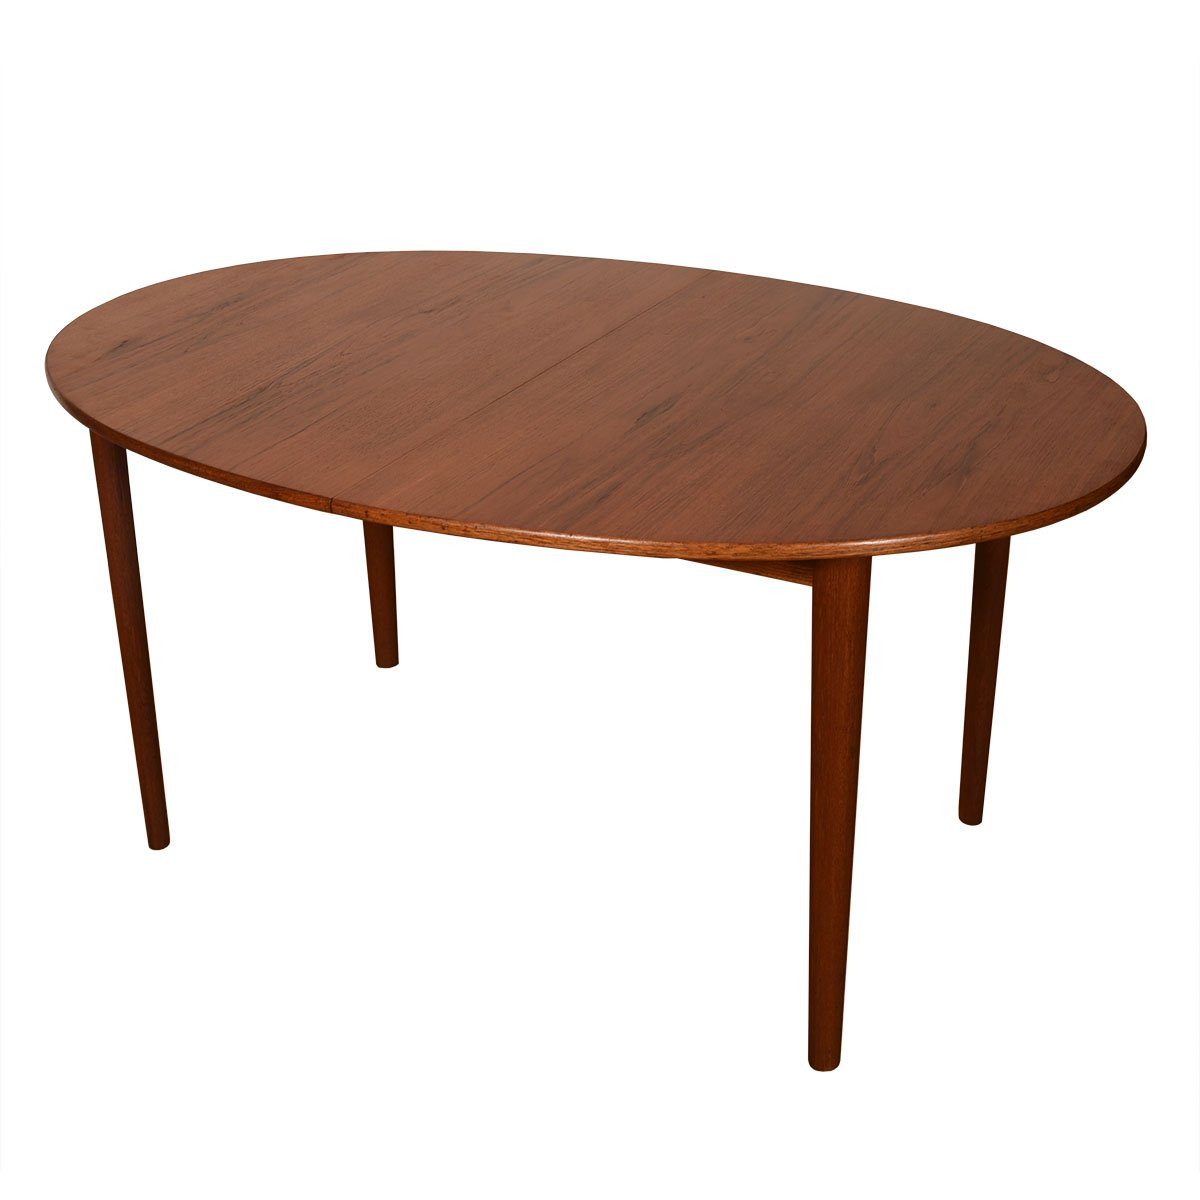 John Stuart Danish Modern Teak Expanding Oval Dining Table.